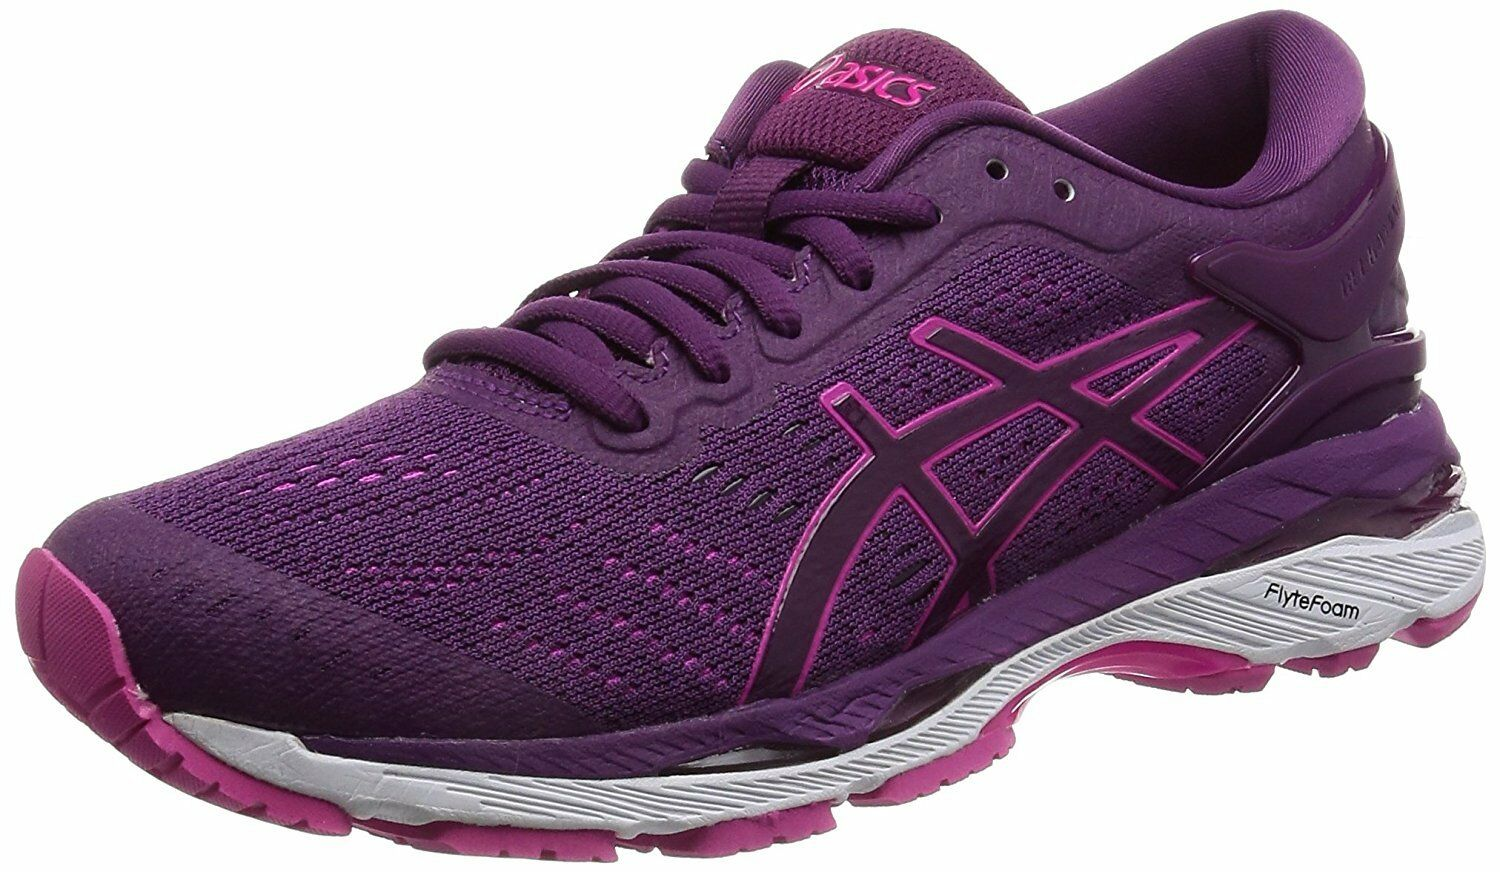 ASICS Running Schuhes LADY GEL-KAYANO24 US7.5(24.5cm) TJG758 Prune Pink Glow US7.5(24.5cm) GEL-KAYANO24 9f1167